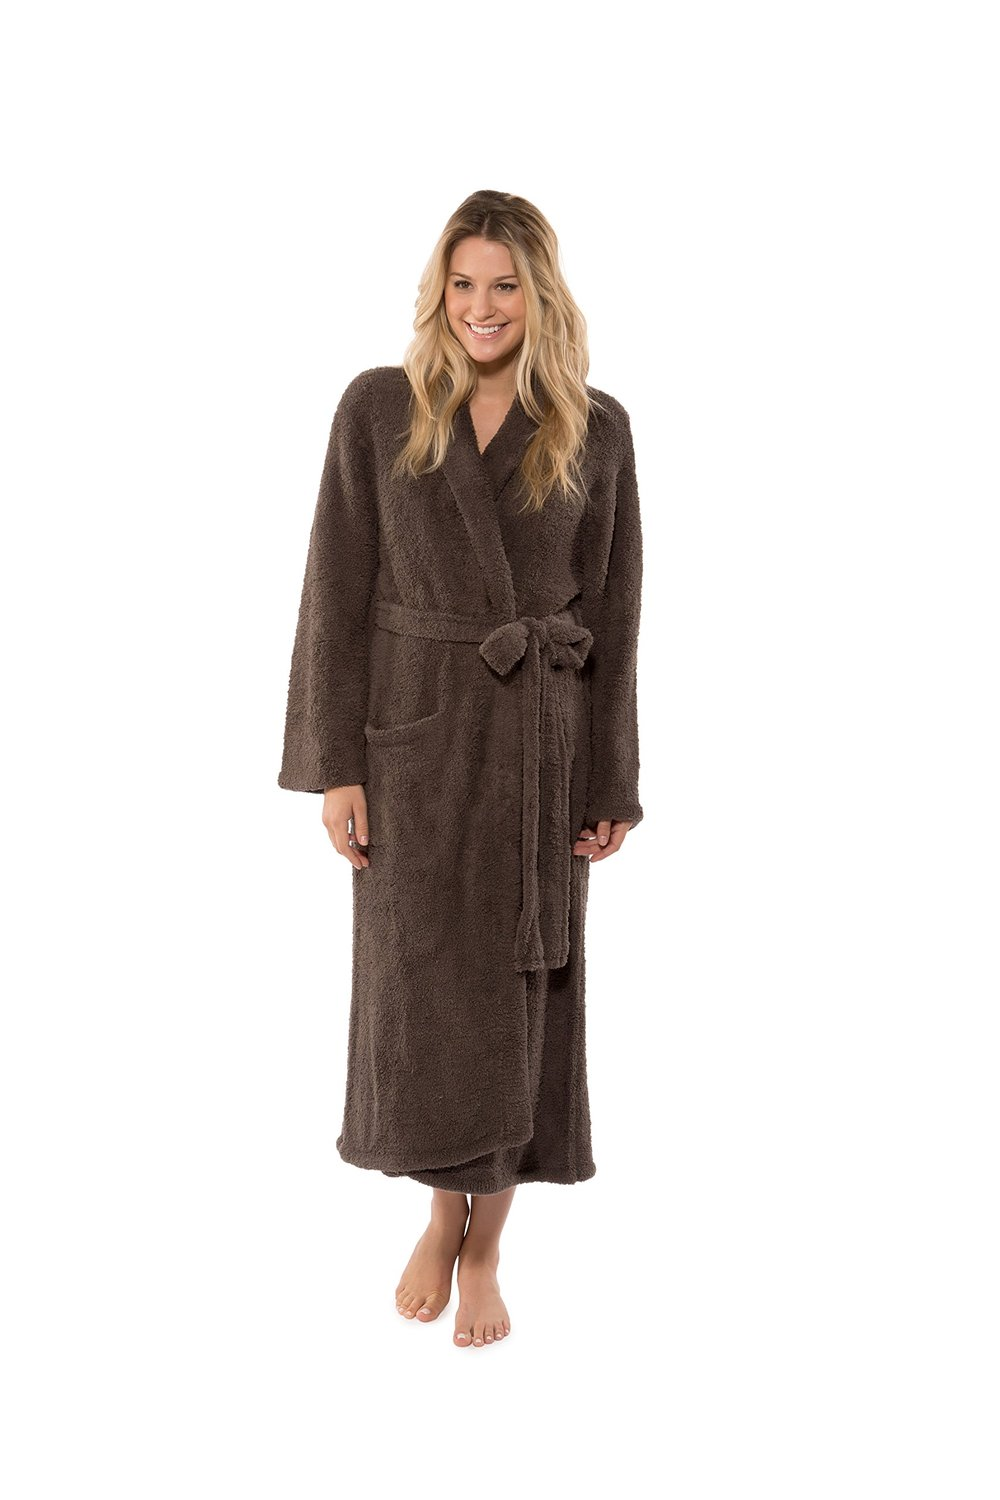 Luxury Barefoot Dreams CozyChic Adult Robe